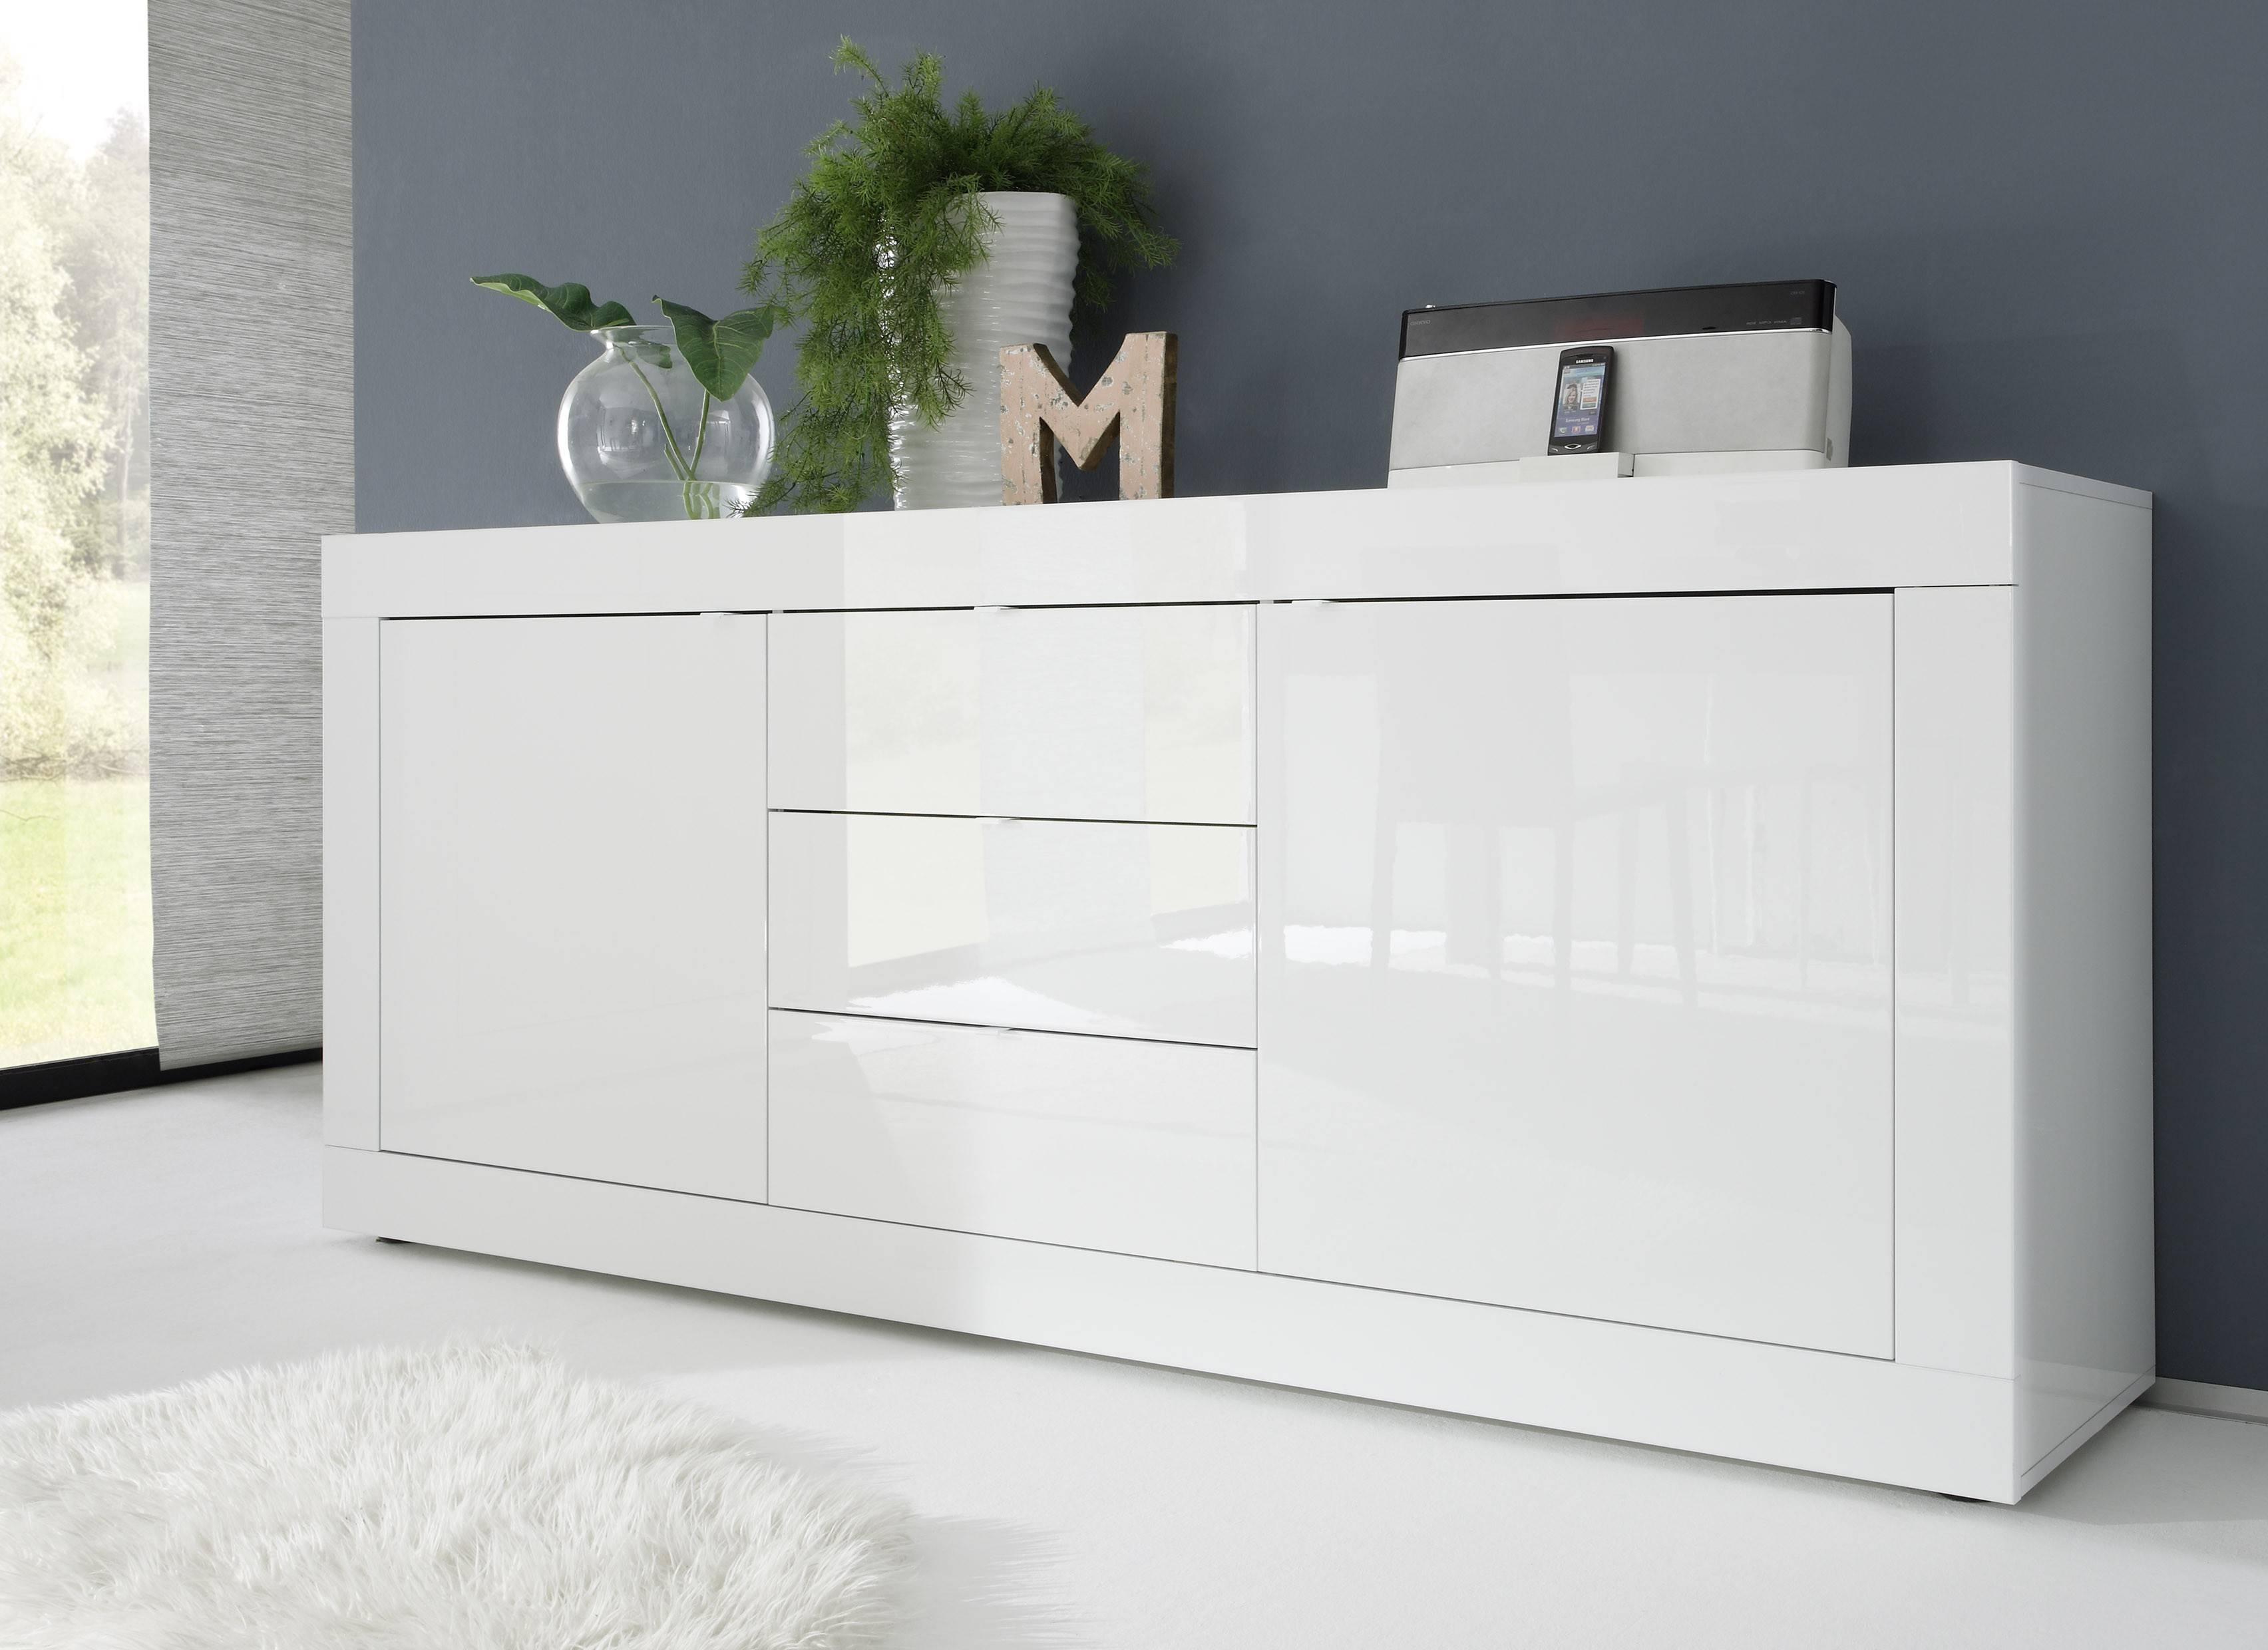 Basic Contemporary White Glossy Lacquer Dining Buffet Lincoln intended for Modern Buffet Sideboards (Image 2 of 15)